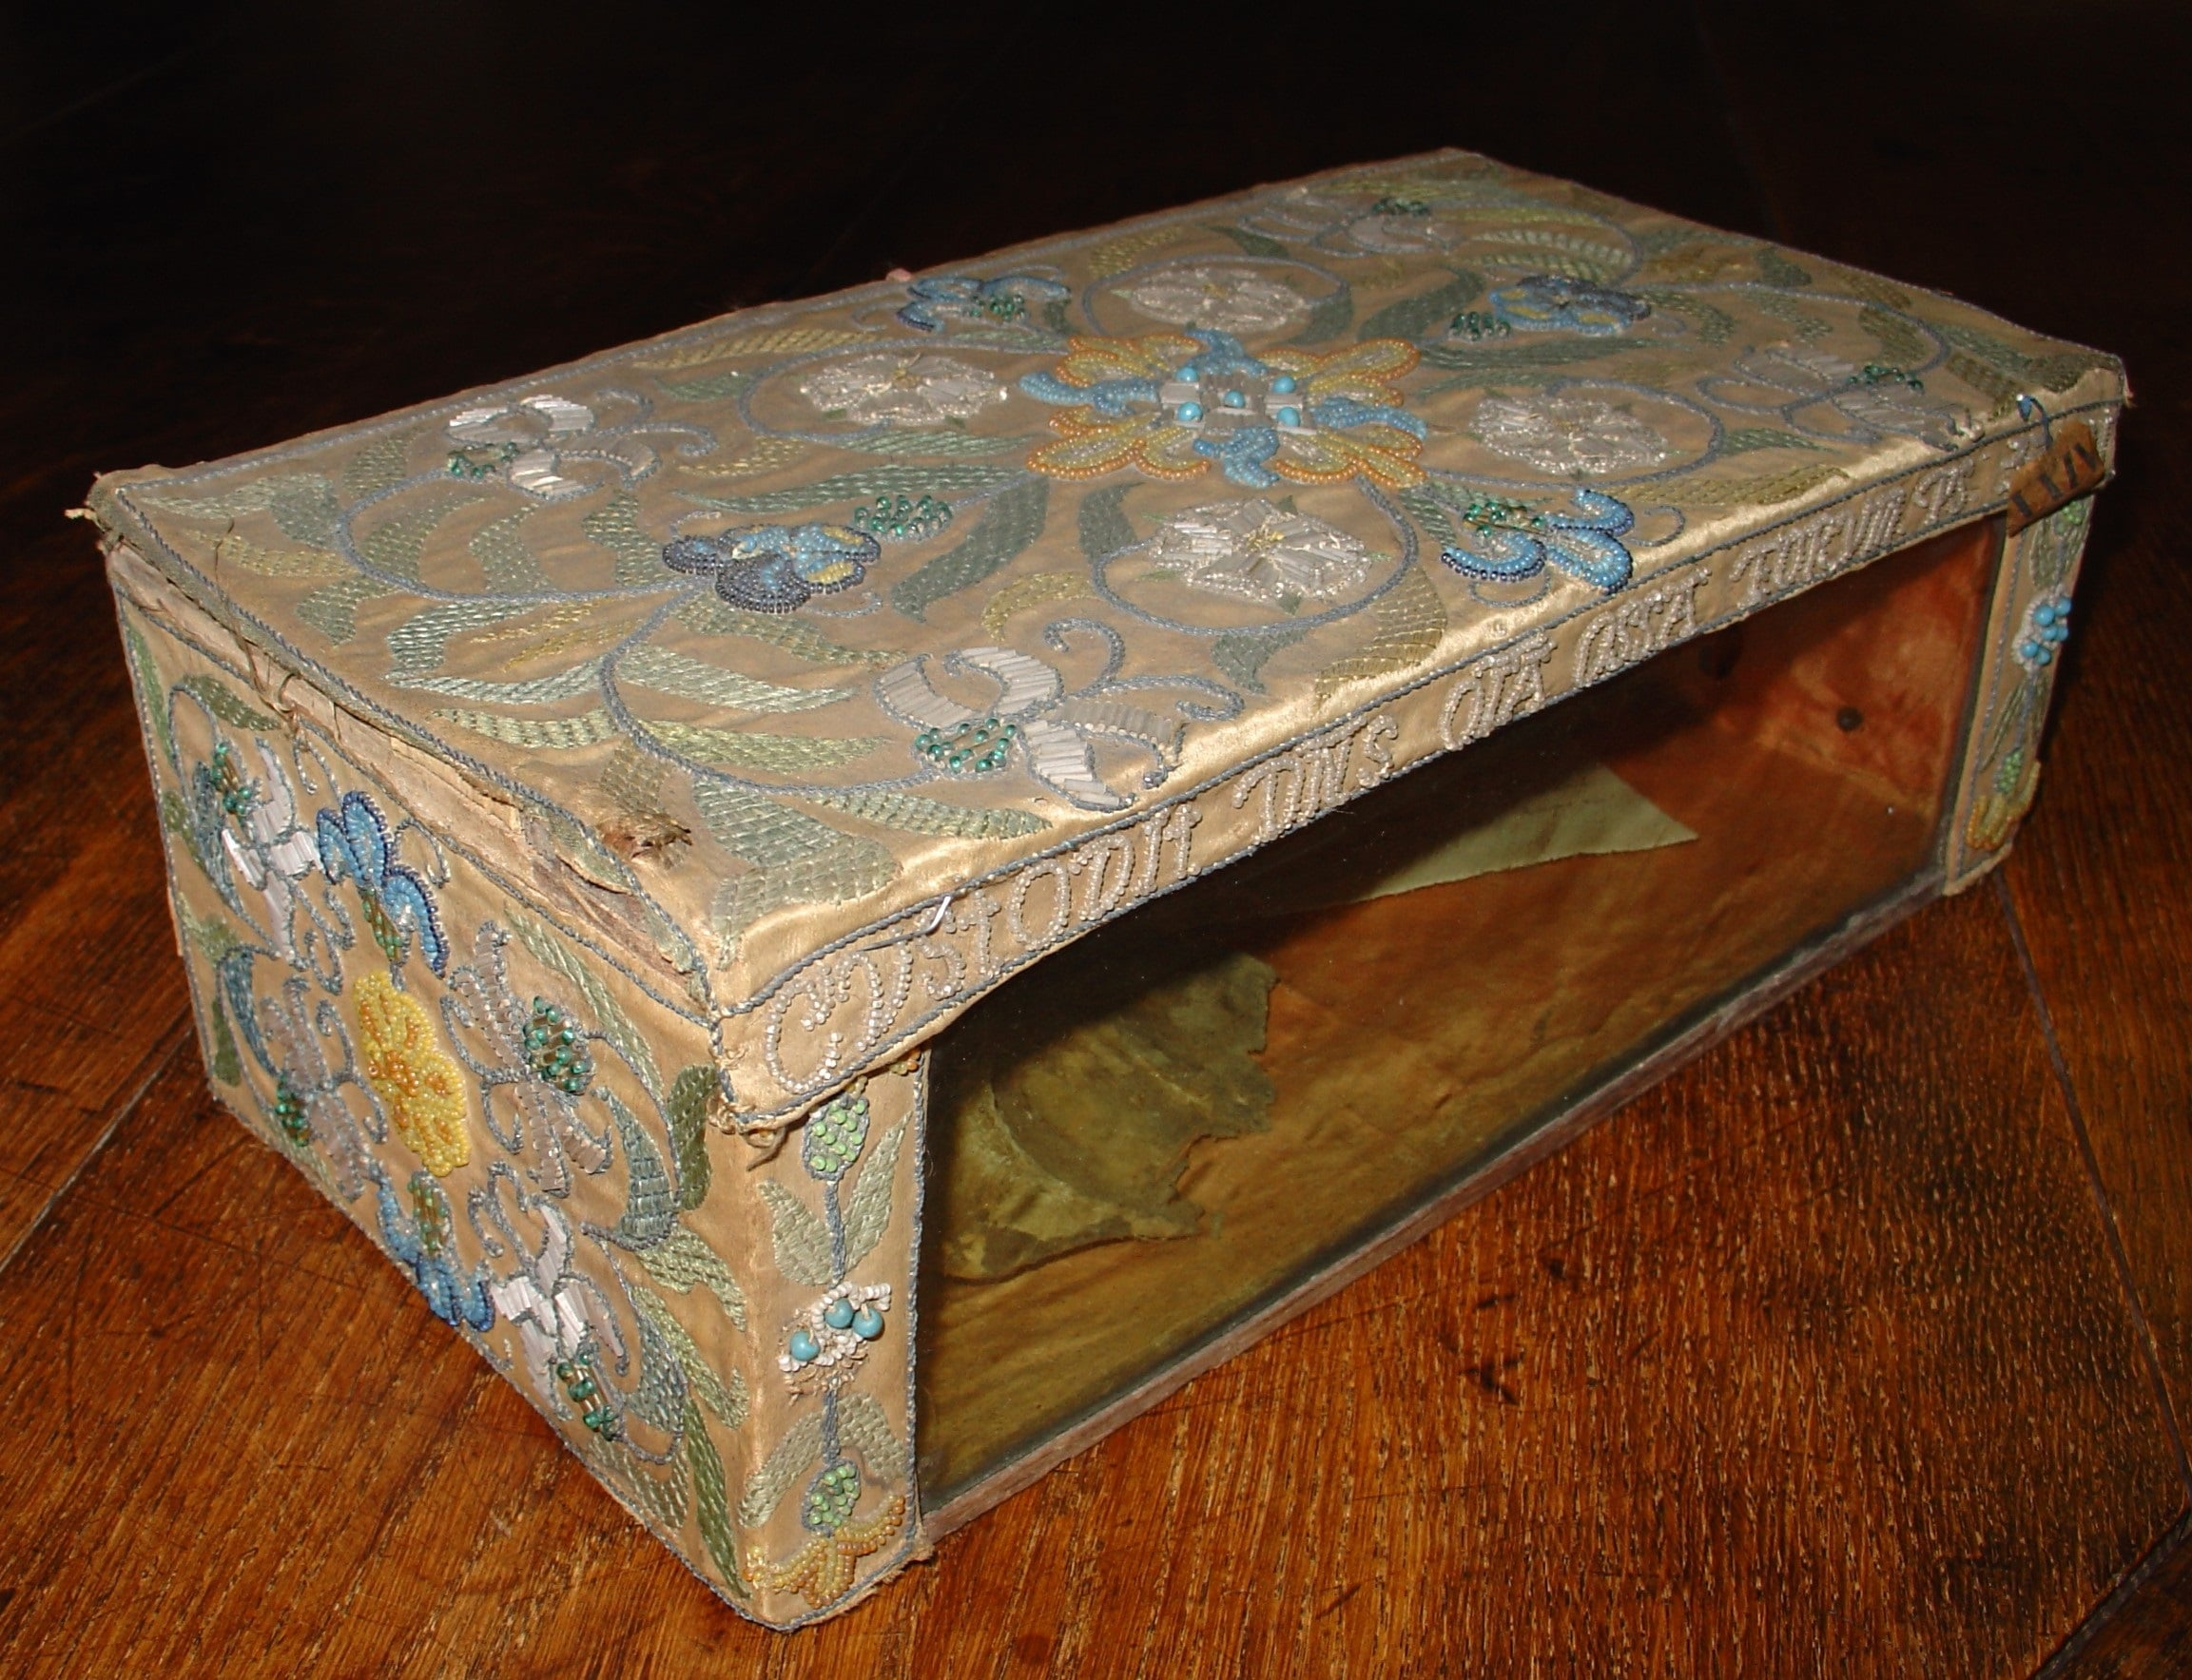 Embroidered chest sitting on a wooden floor with a glass panel on the side revealing a bone